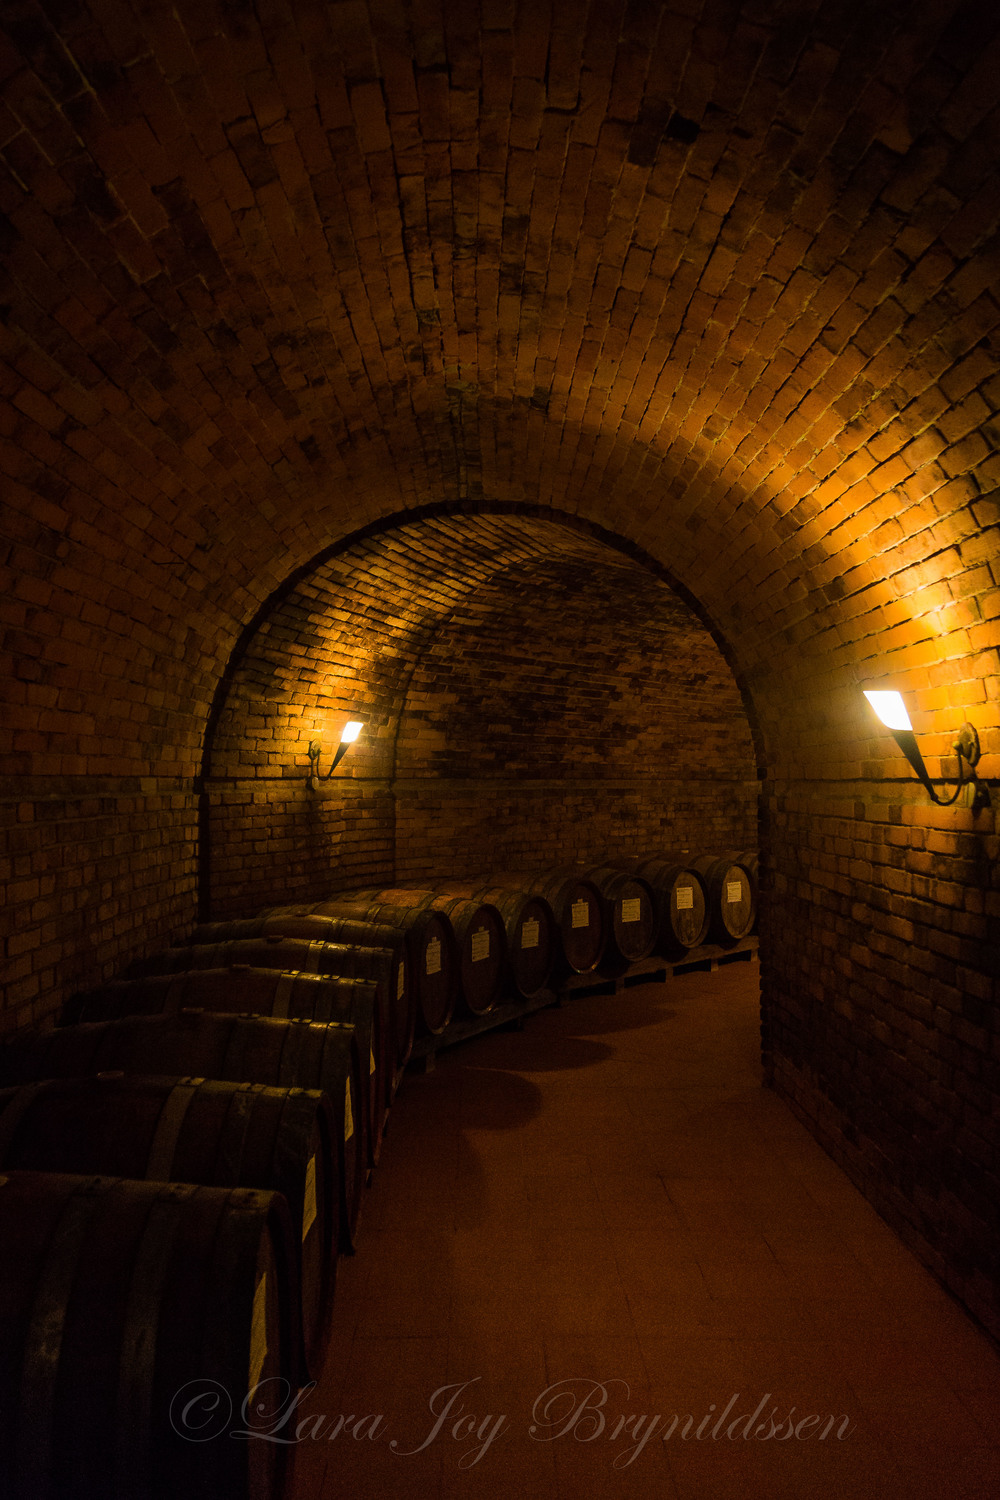 We toured the wine production facilities of Castello Monterinaldi in Chianti.